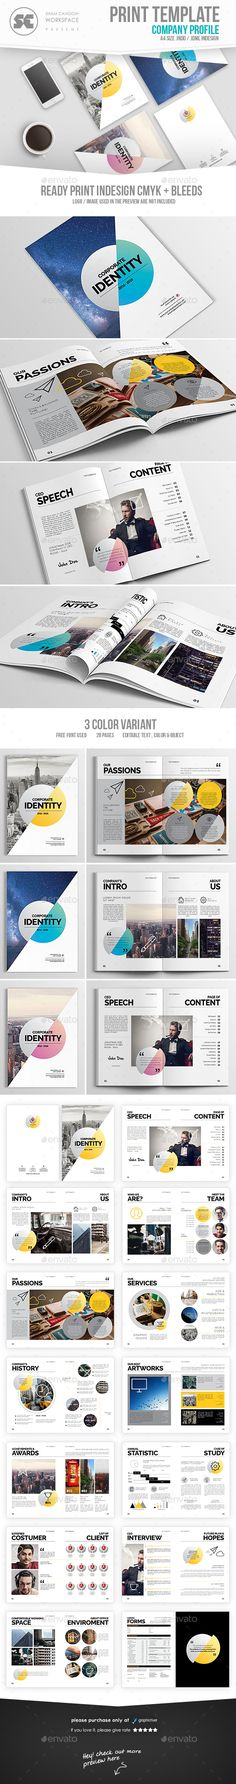 Company Profile Template InDesign INDD - A4 and US Letter SIze - profile company template